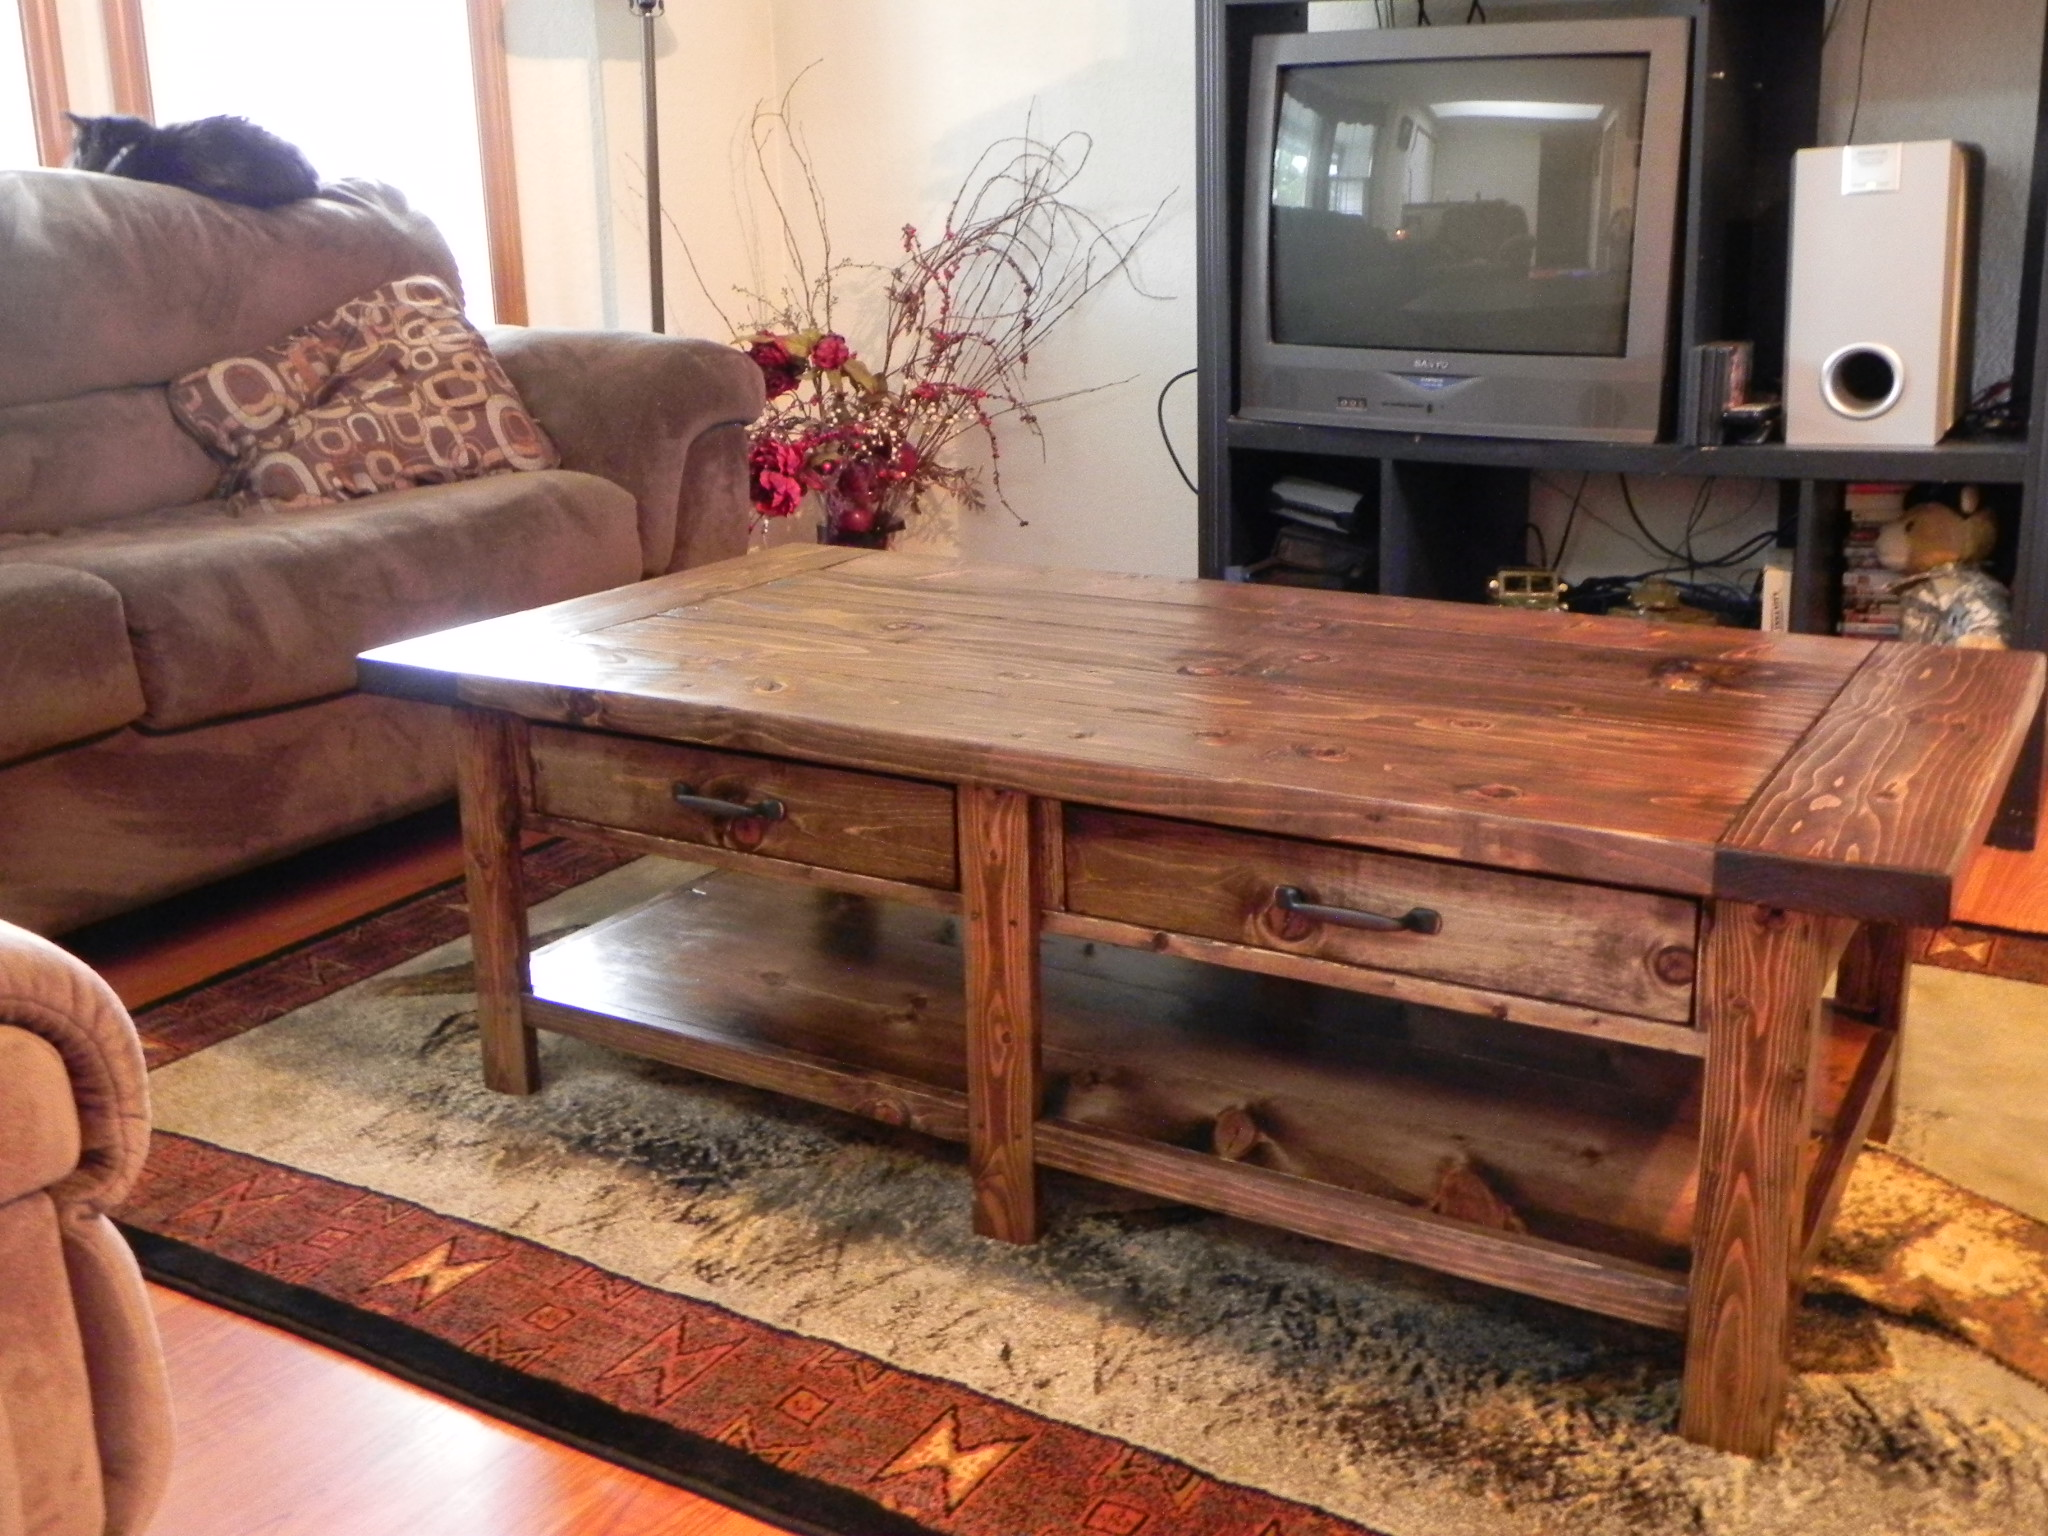 Benchright Coffee Table Do It Yourself Home Projects From Ana White